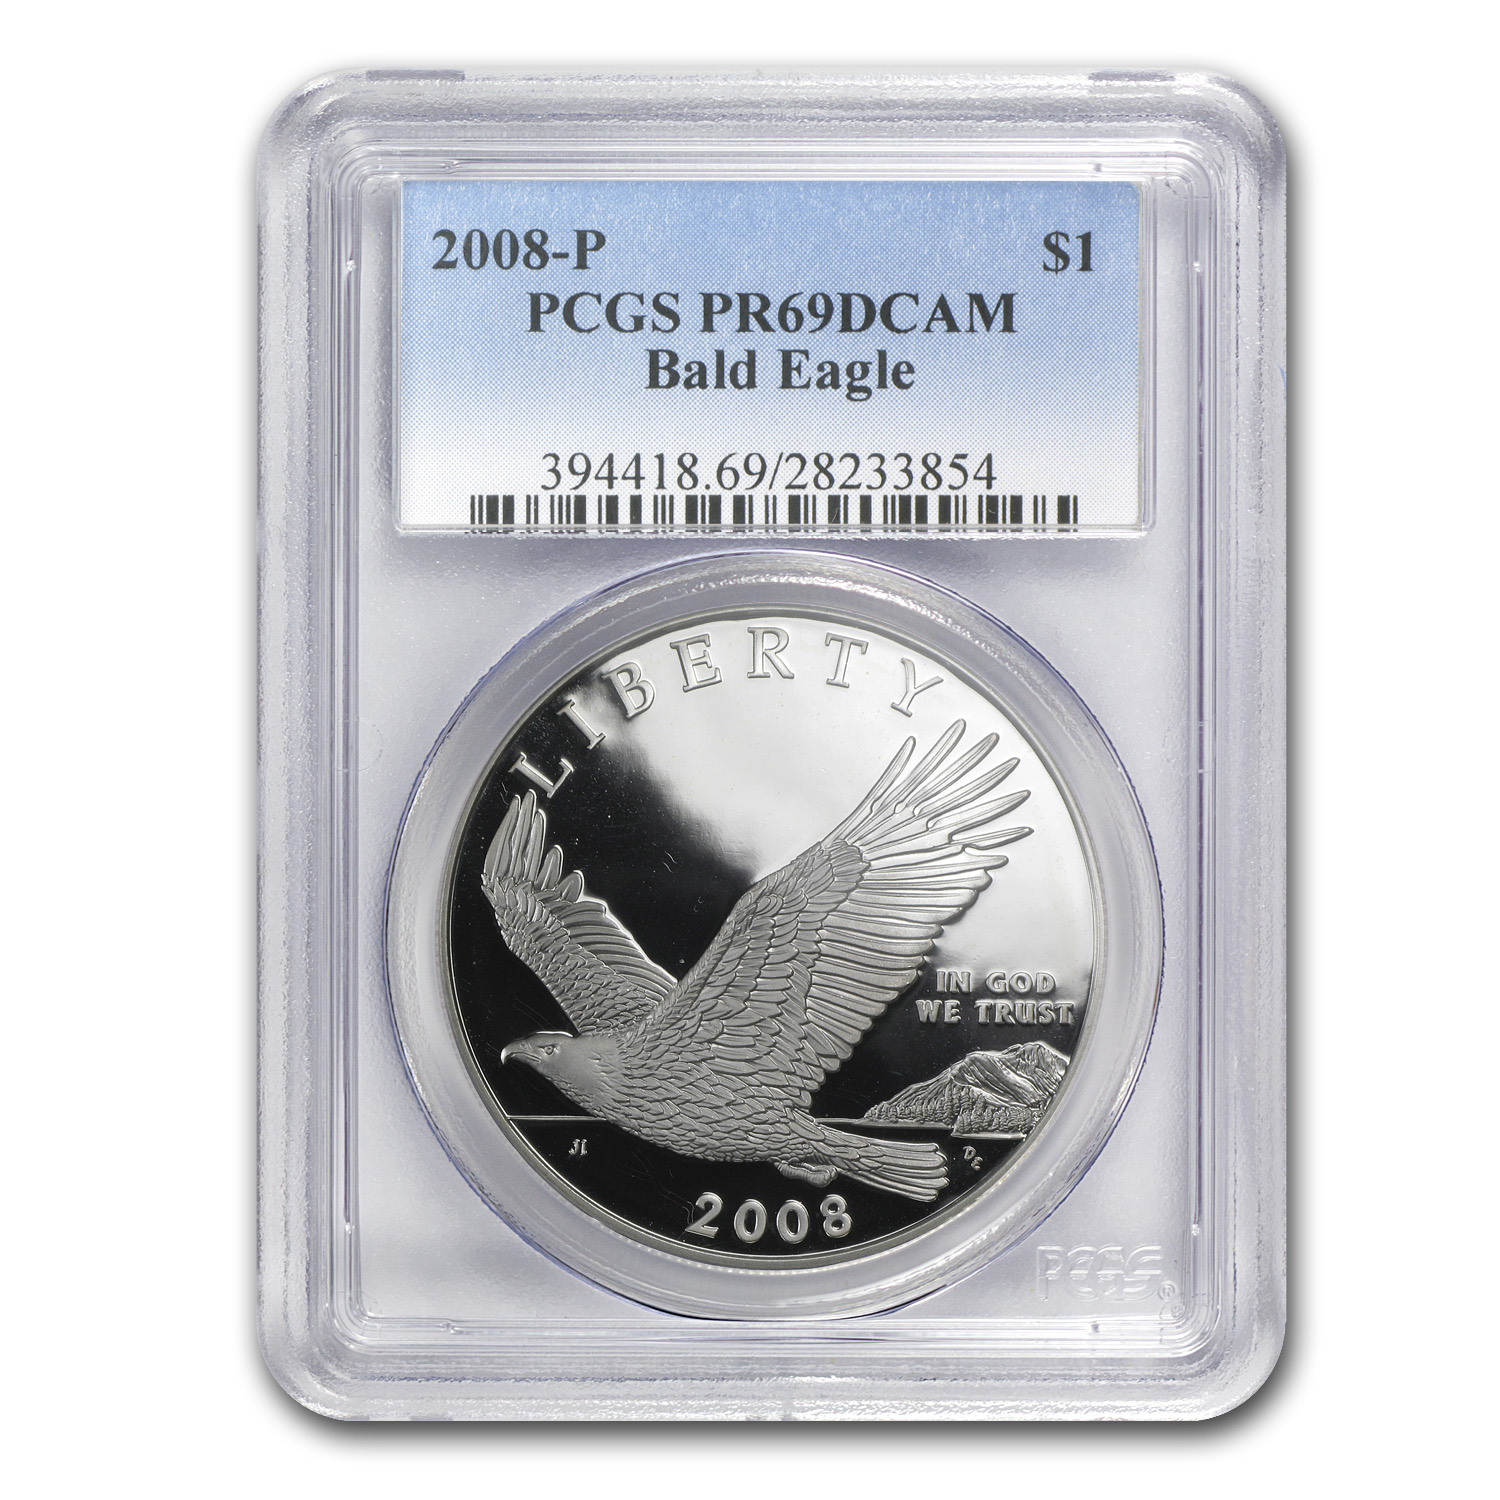 2008-P Bald Eagle $1 Silver Commemorative PR-69 DCAM PCGS